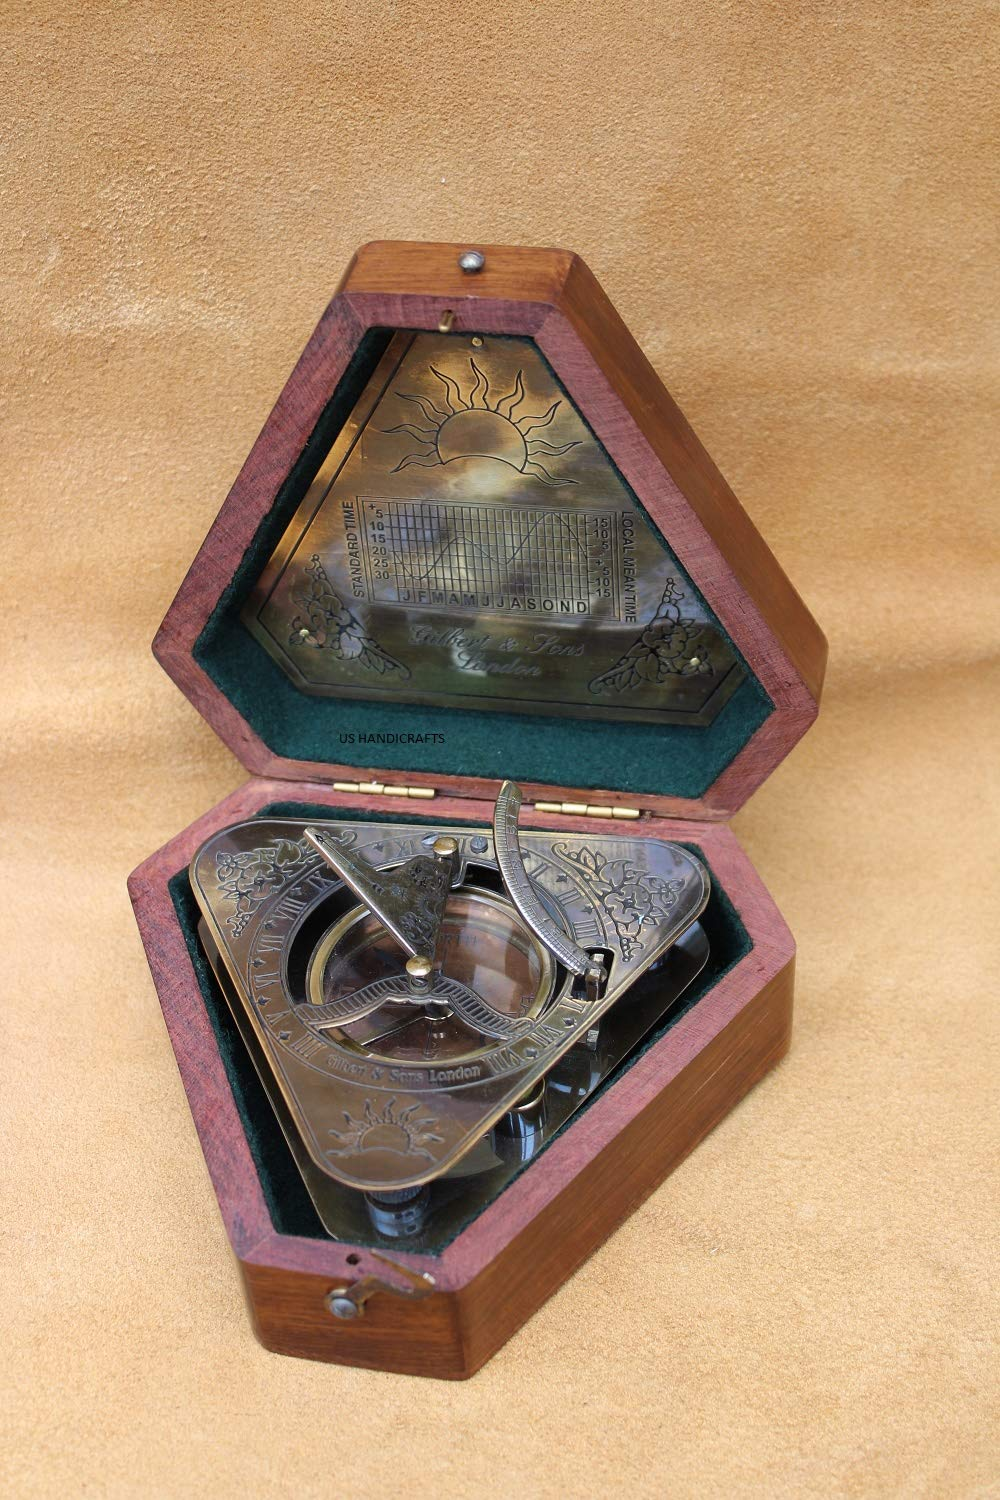 US Handicrafts History Brass Triangle Sundial Compass in Hardwood Box. by US Handicrafts (Image #6)